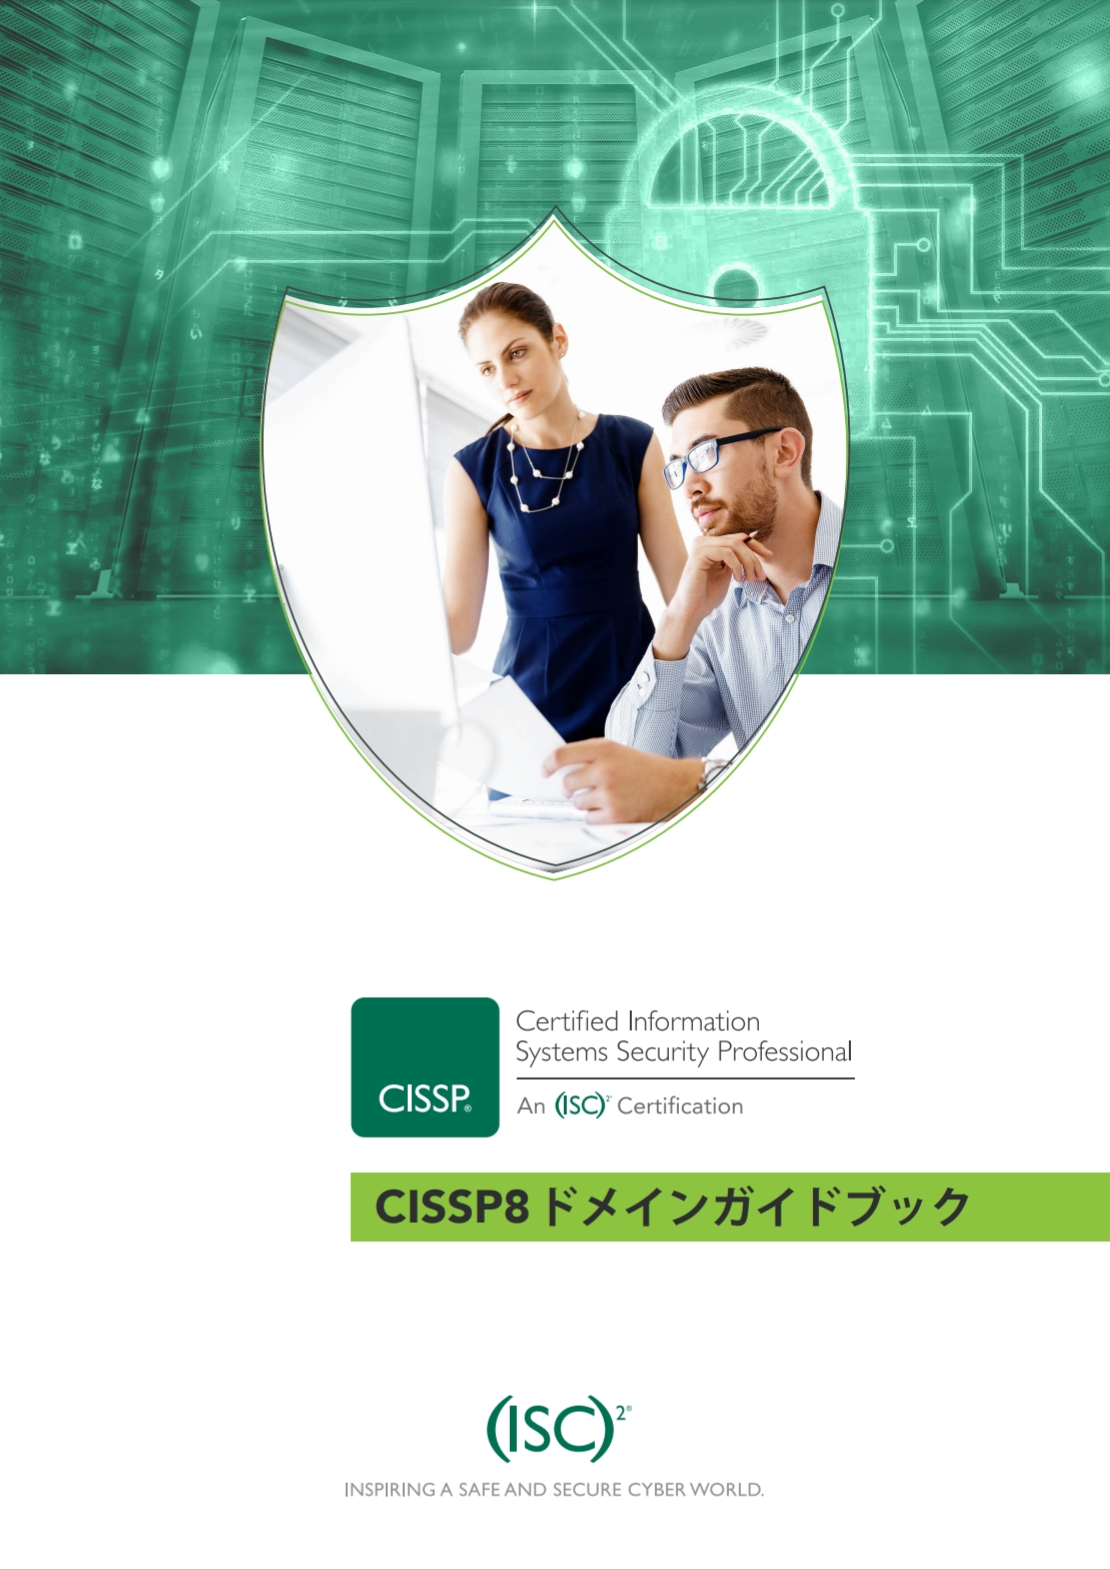 CISSP8Domainguide